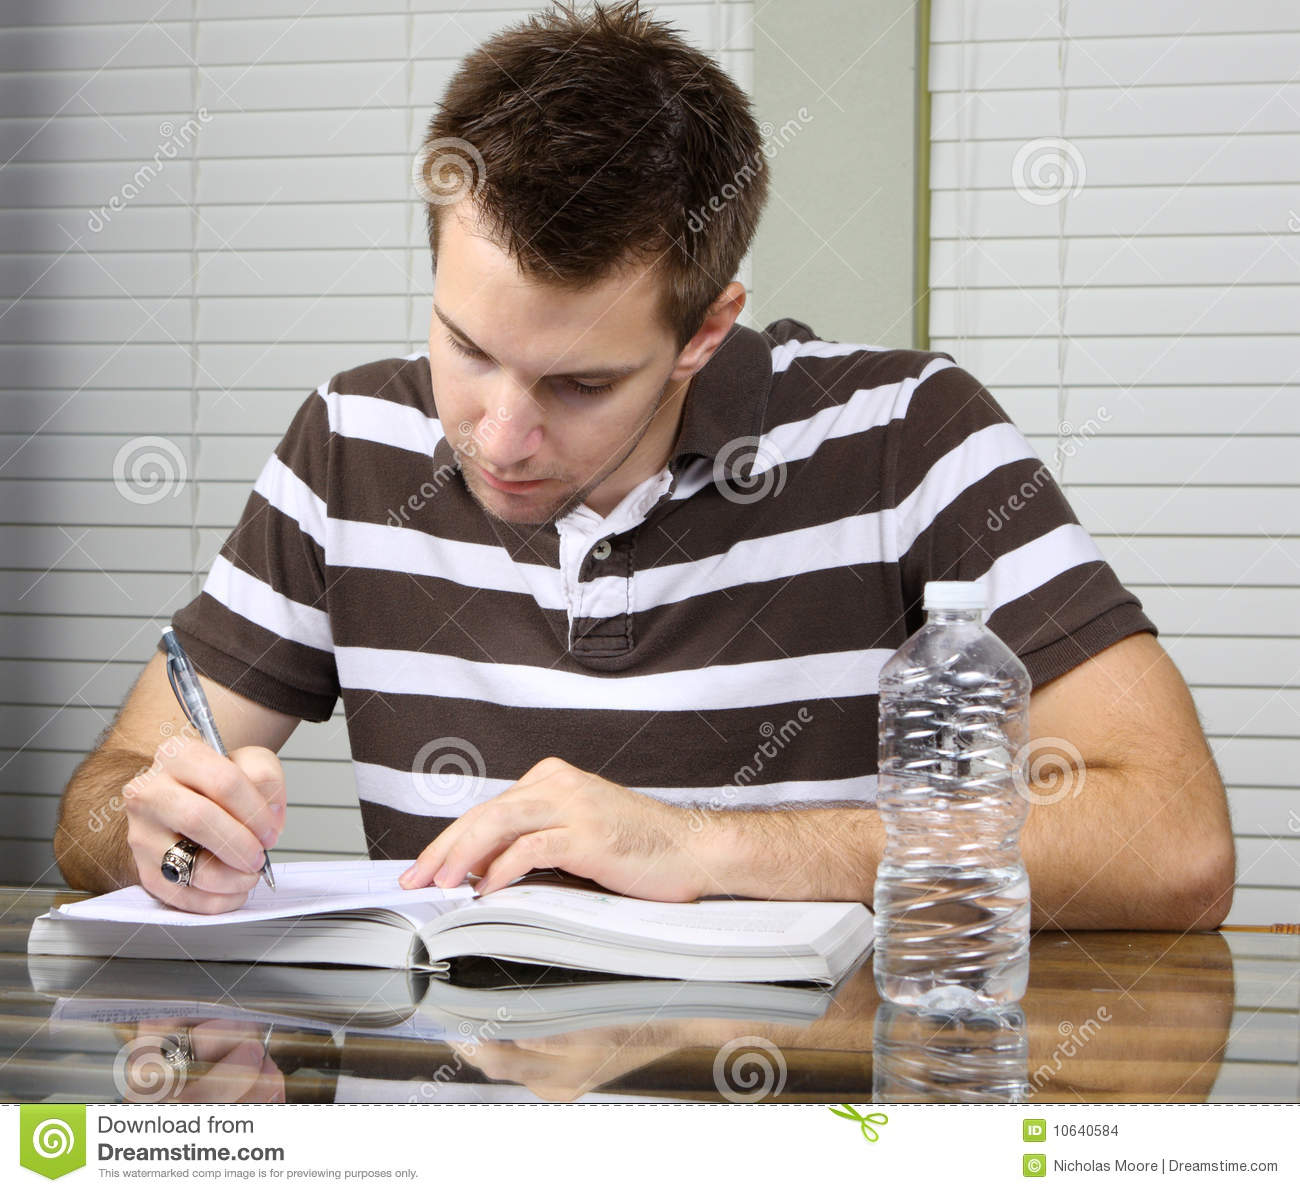 Student Doing Work Stock Photo Image Of Caucasian, Business  10640584